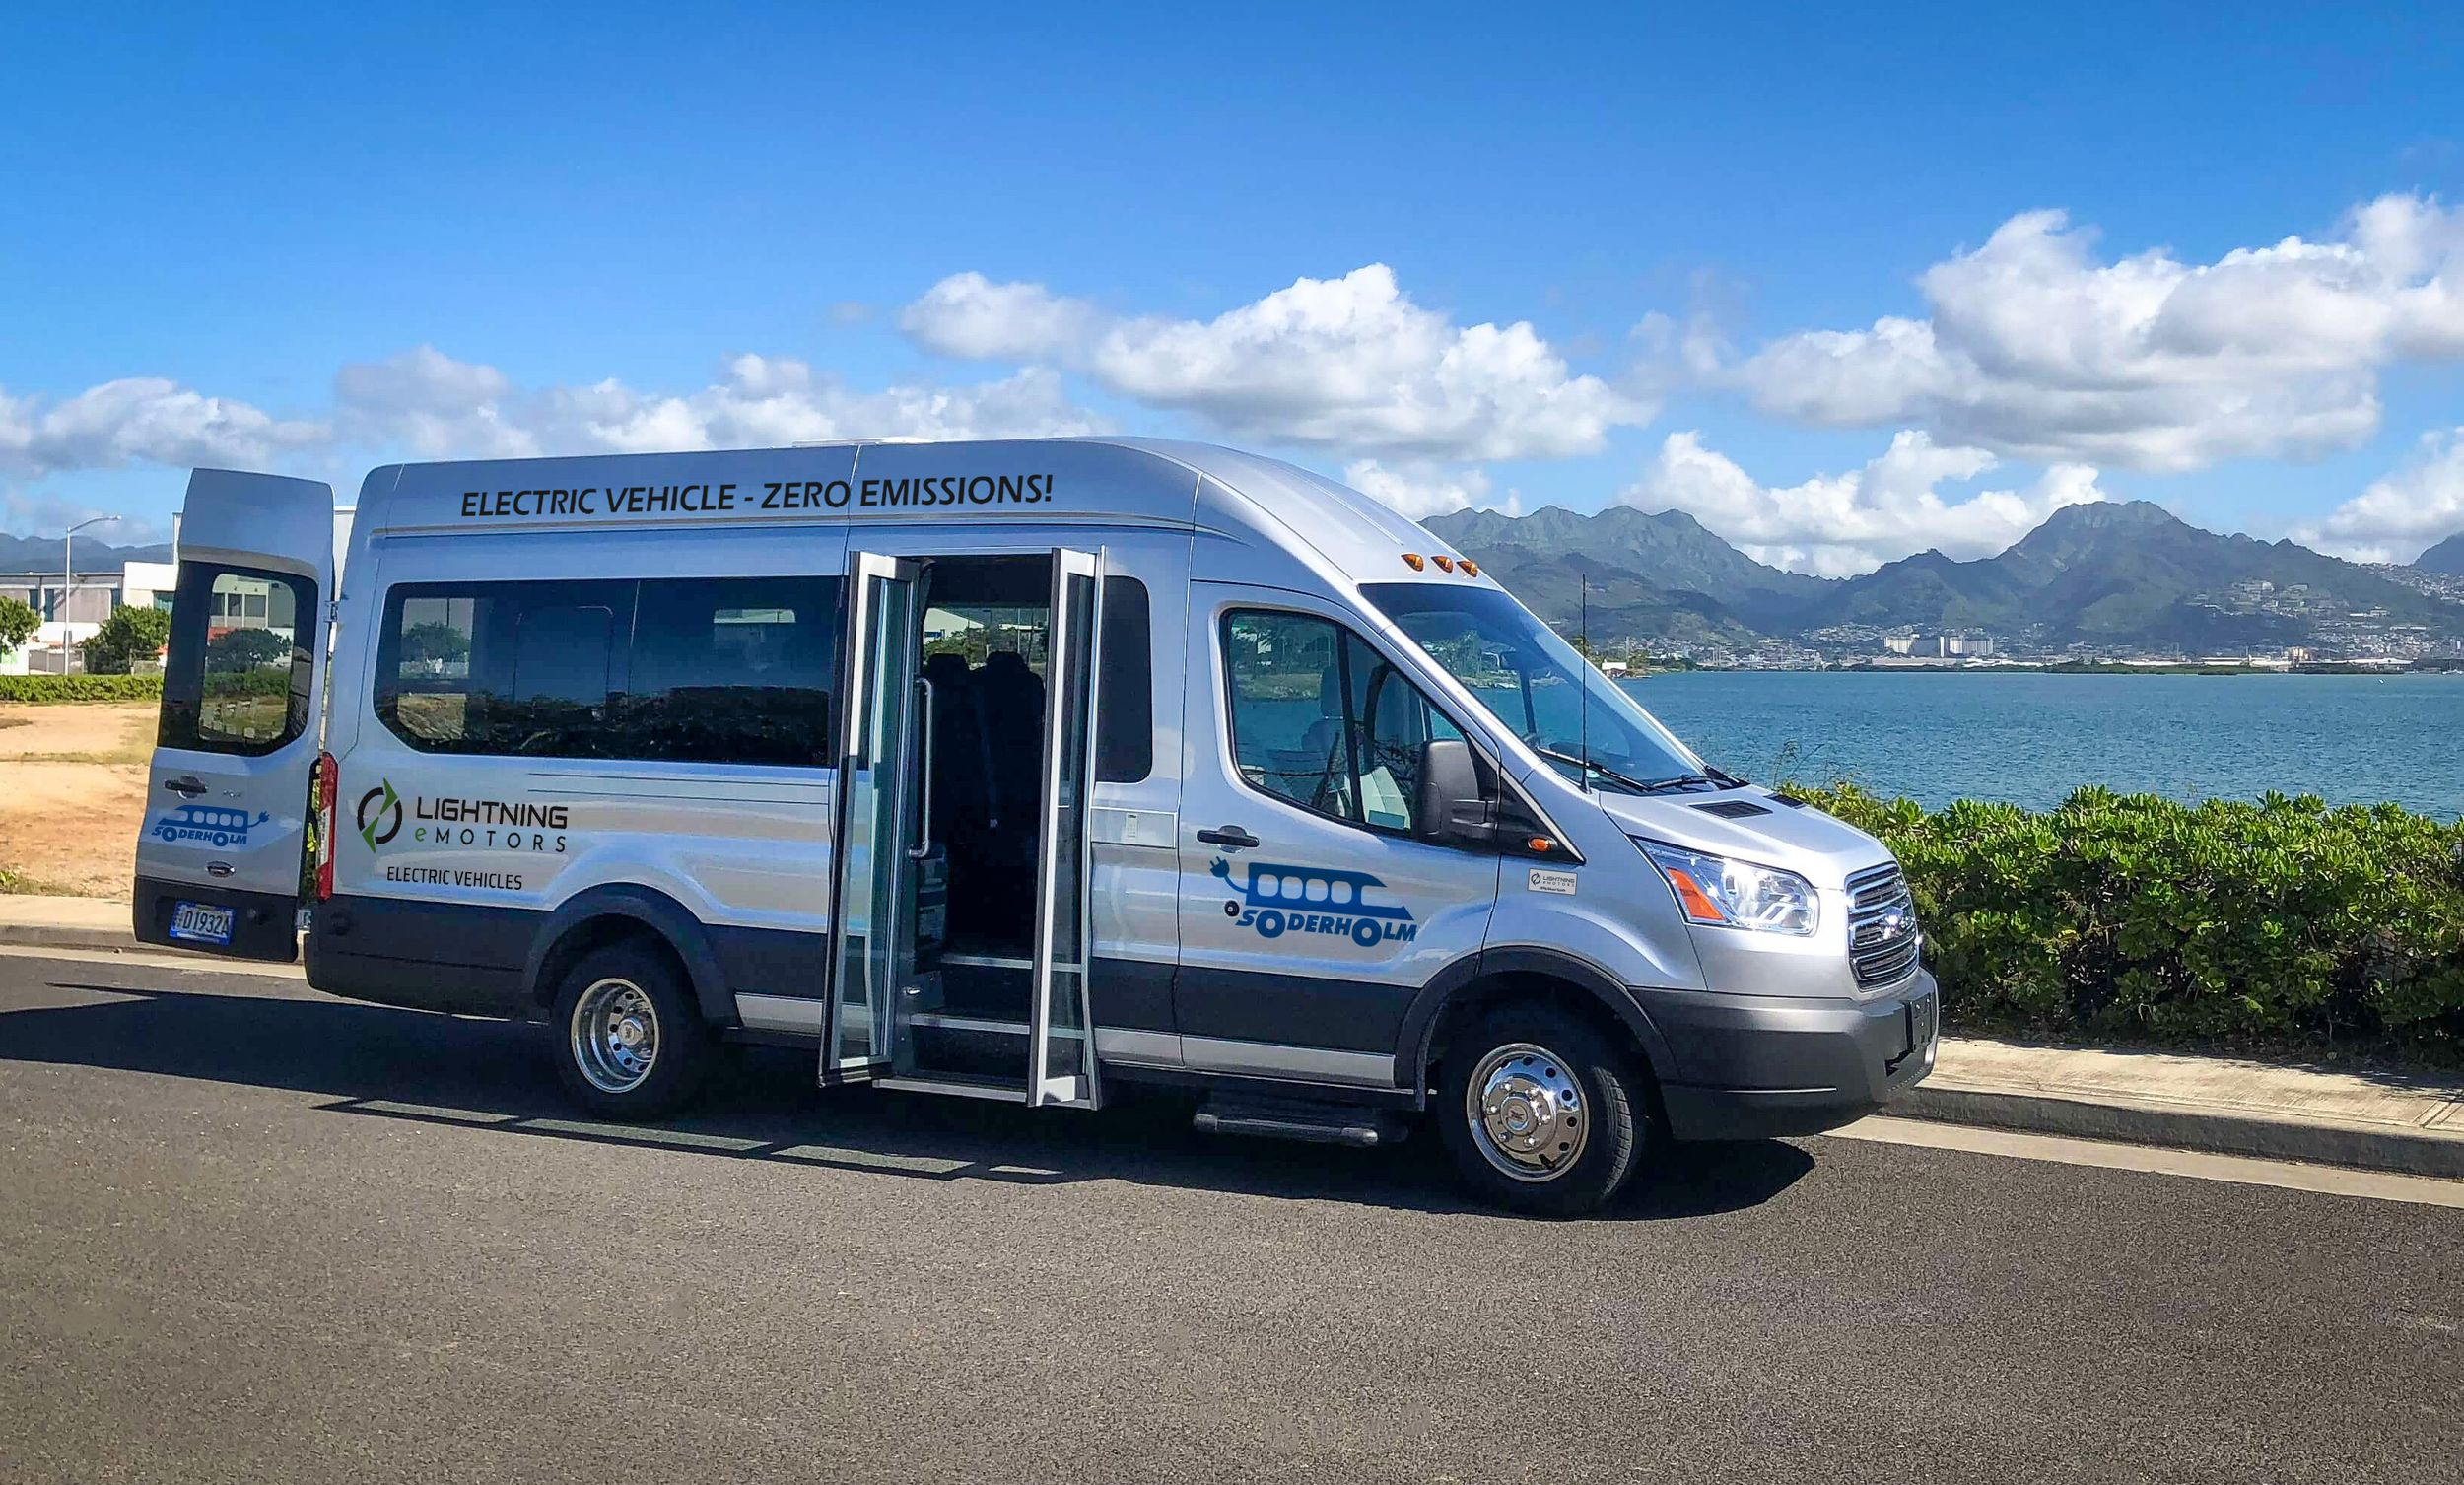 Lightning eMotors Partners with Soderholm Bus & Mobility to Sell Electric Commercial Vehicles in Hawaii